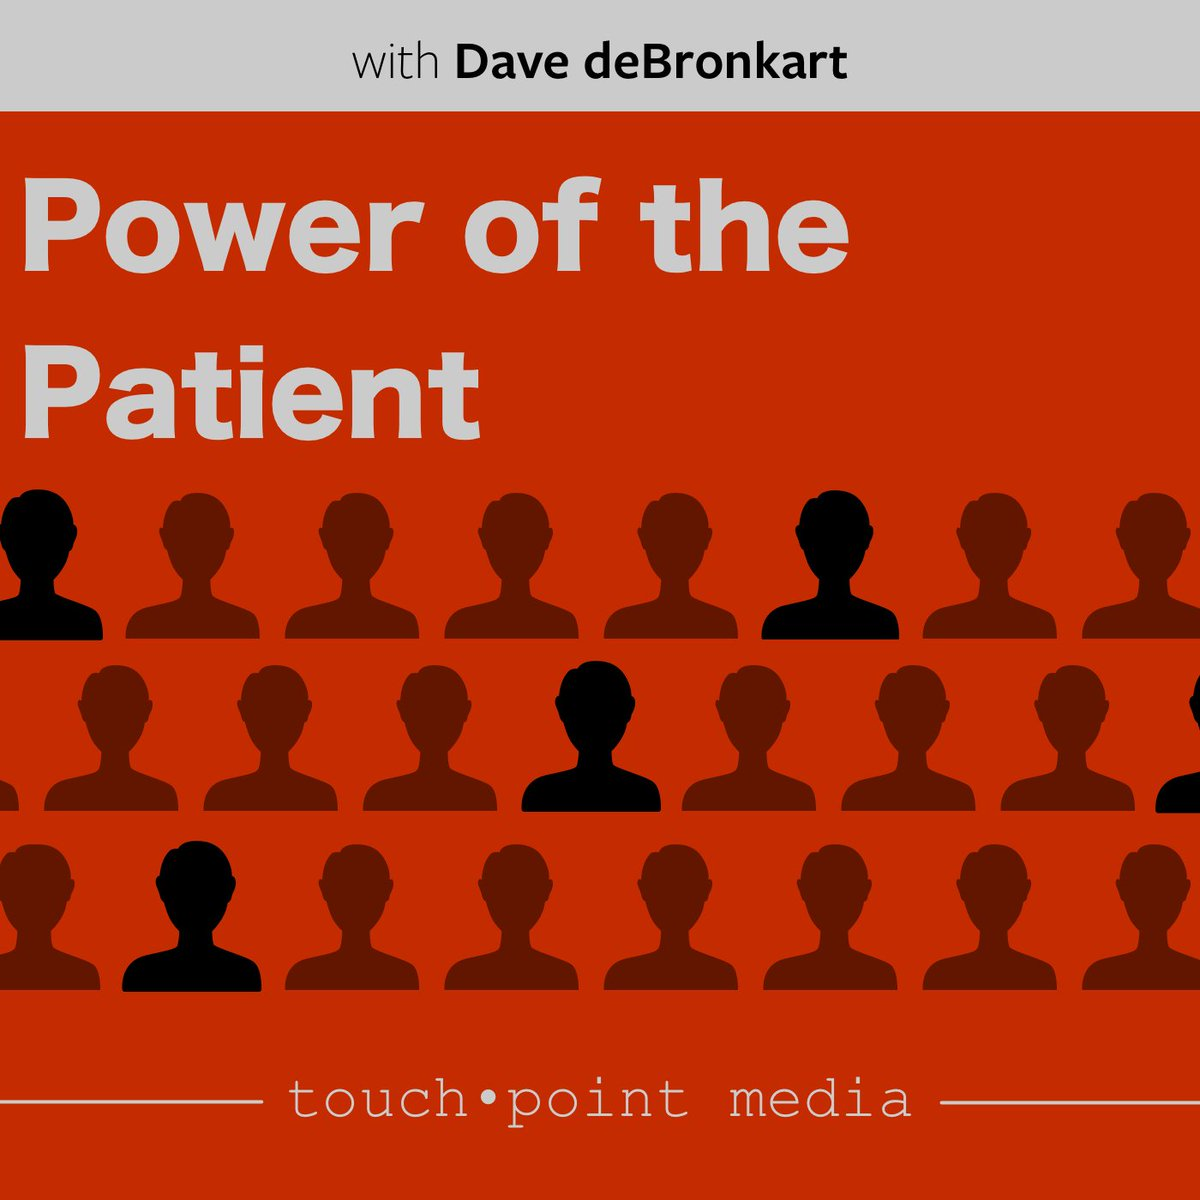 Check out EP1 of 'Power of the Patient' with @ePatientDave - the latest podcast from @touchpointpcast https://t.co/pAdiNRNKHB #meded #epatient